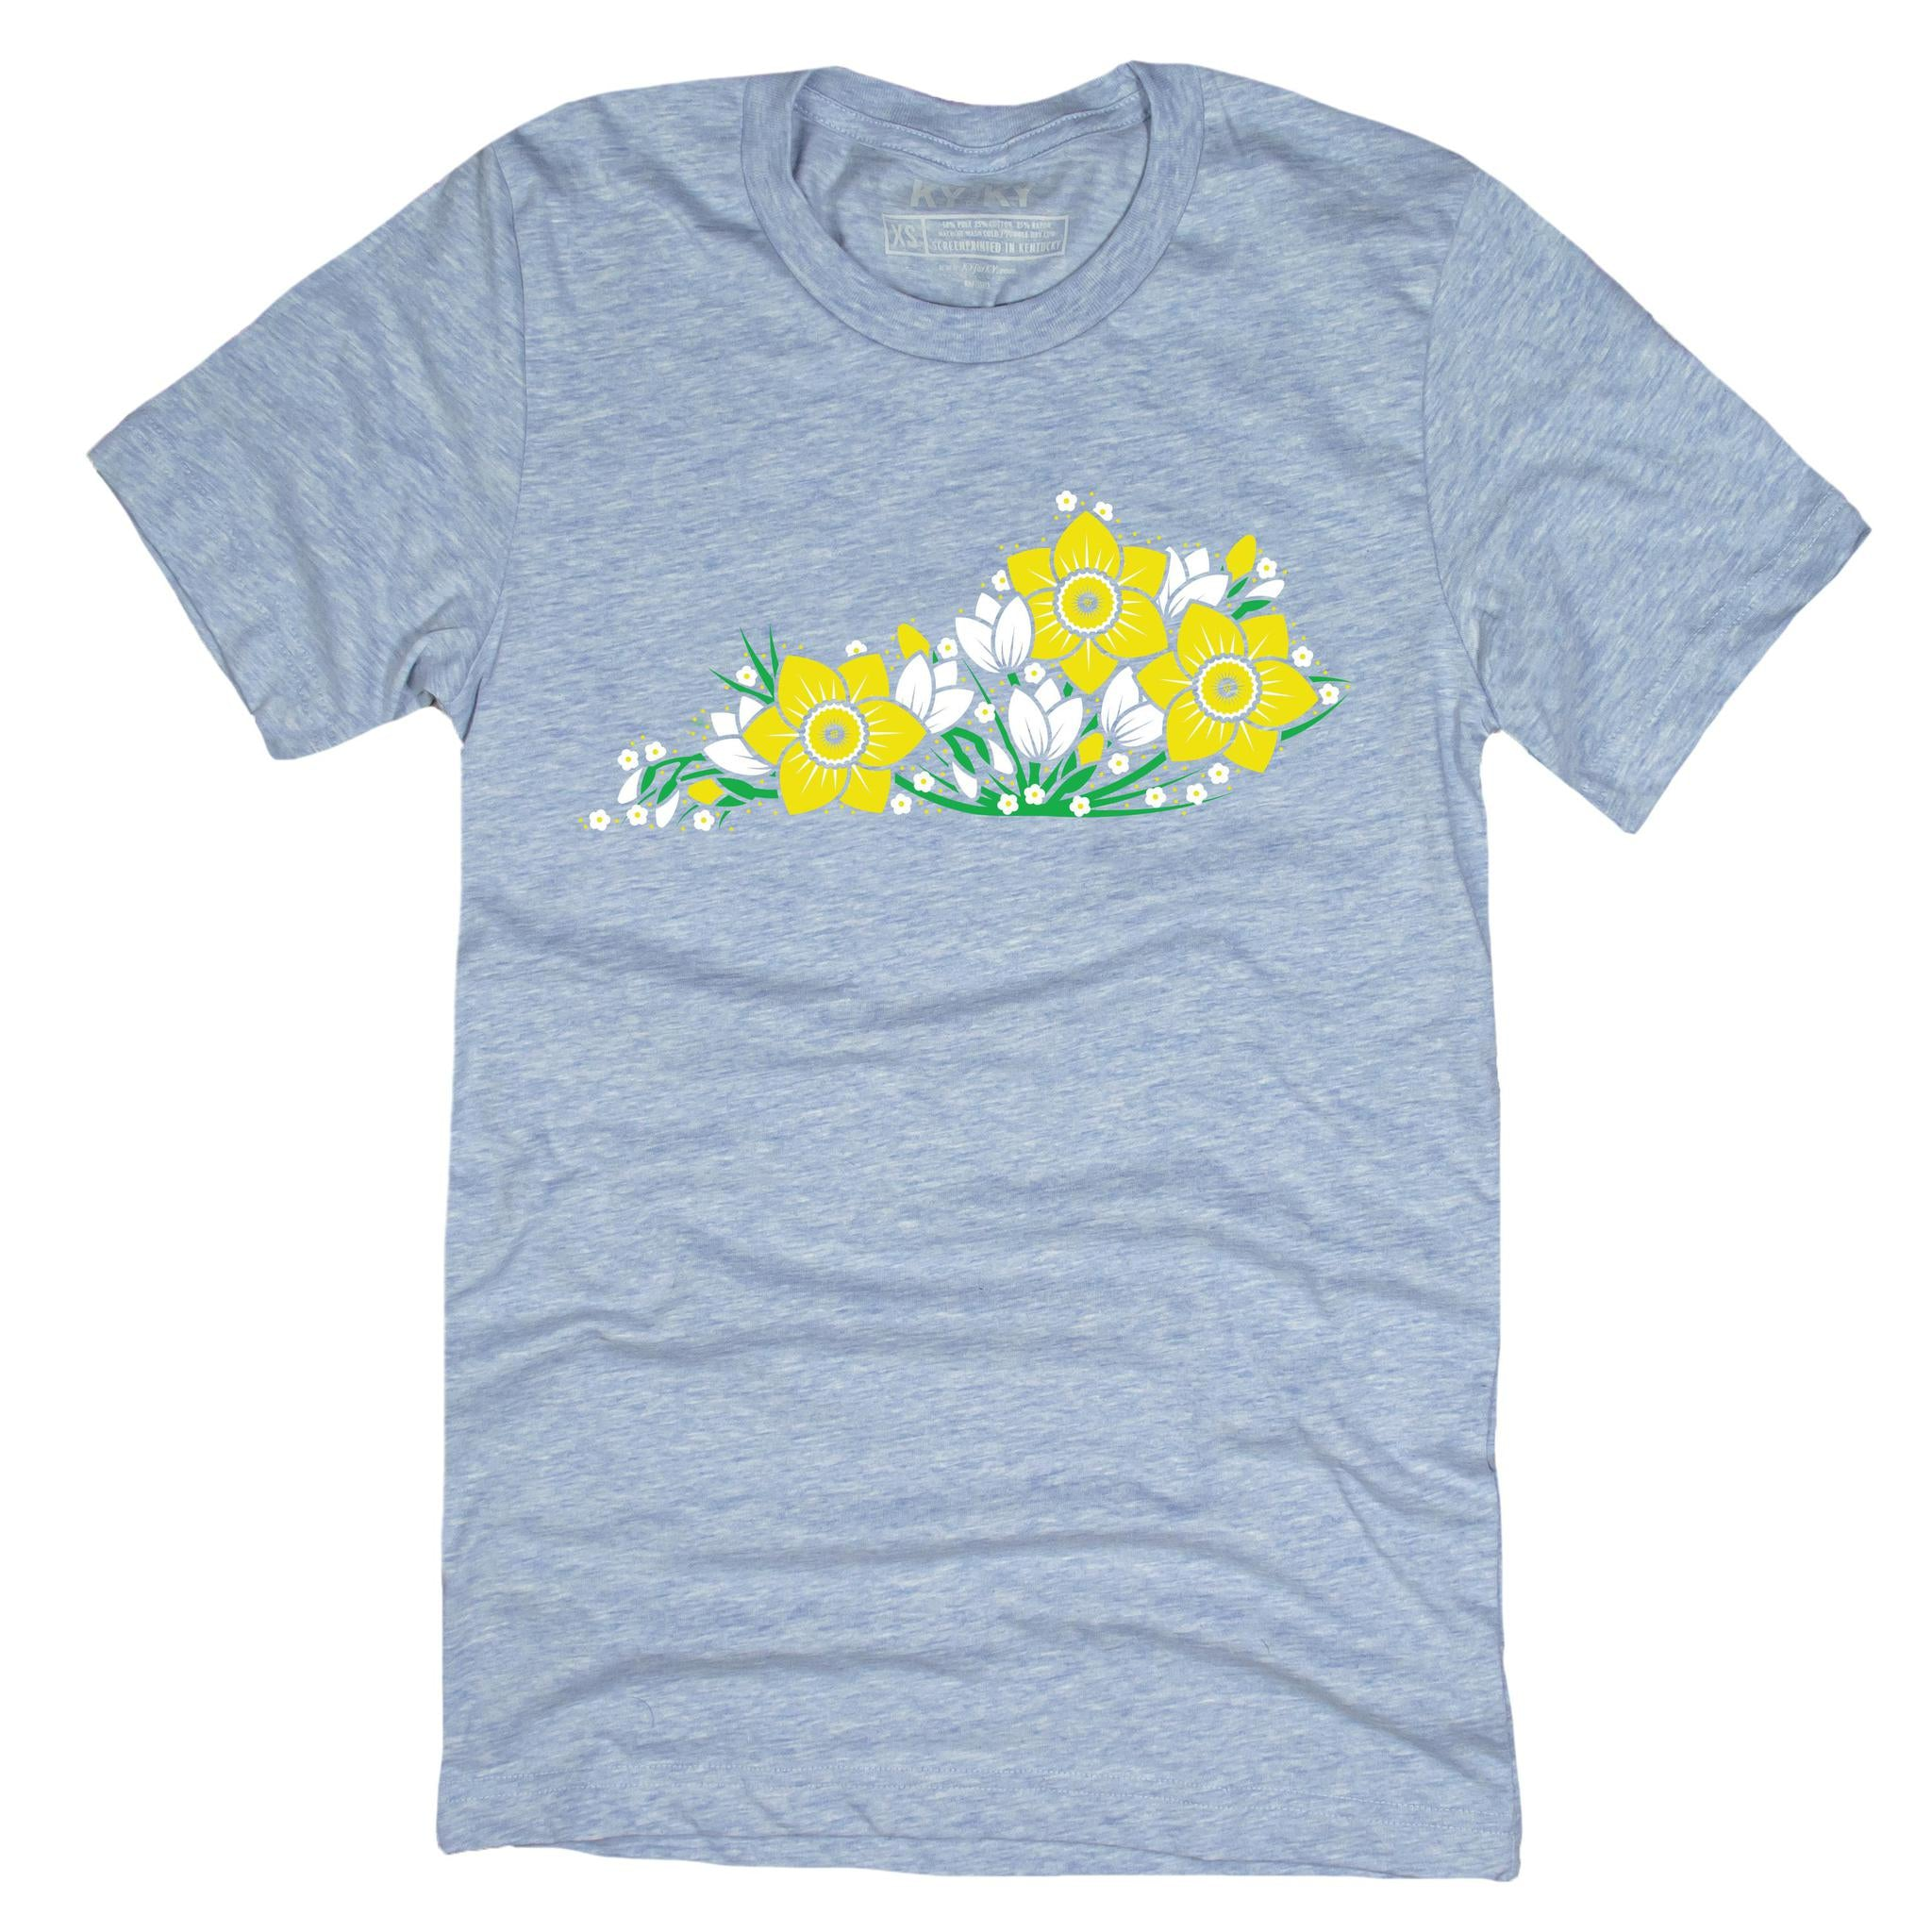 Spring Flower Ky T-Shirt-T-Shirt-KY for KY Store